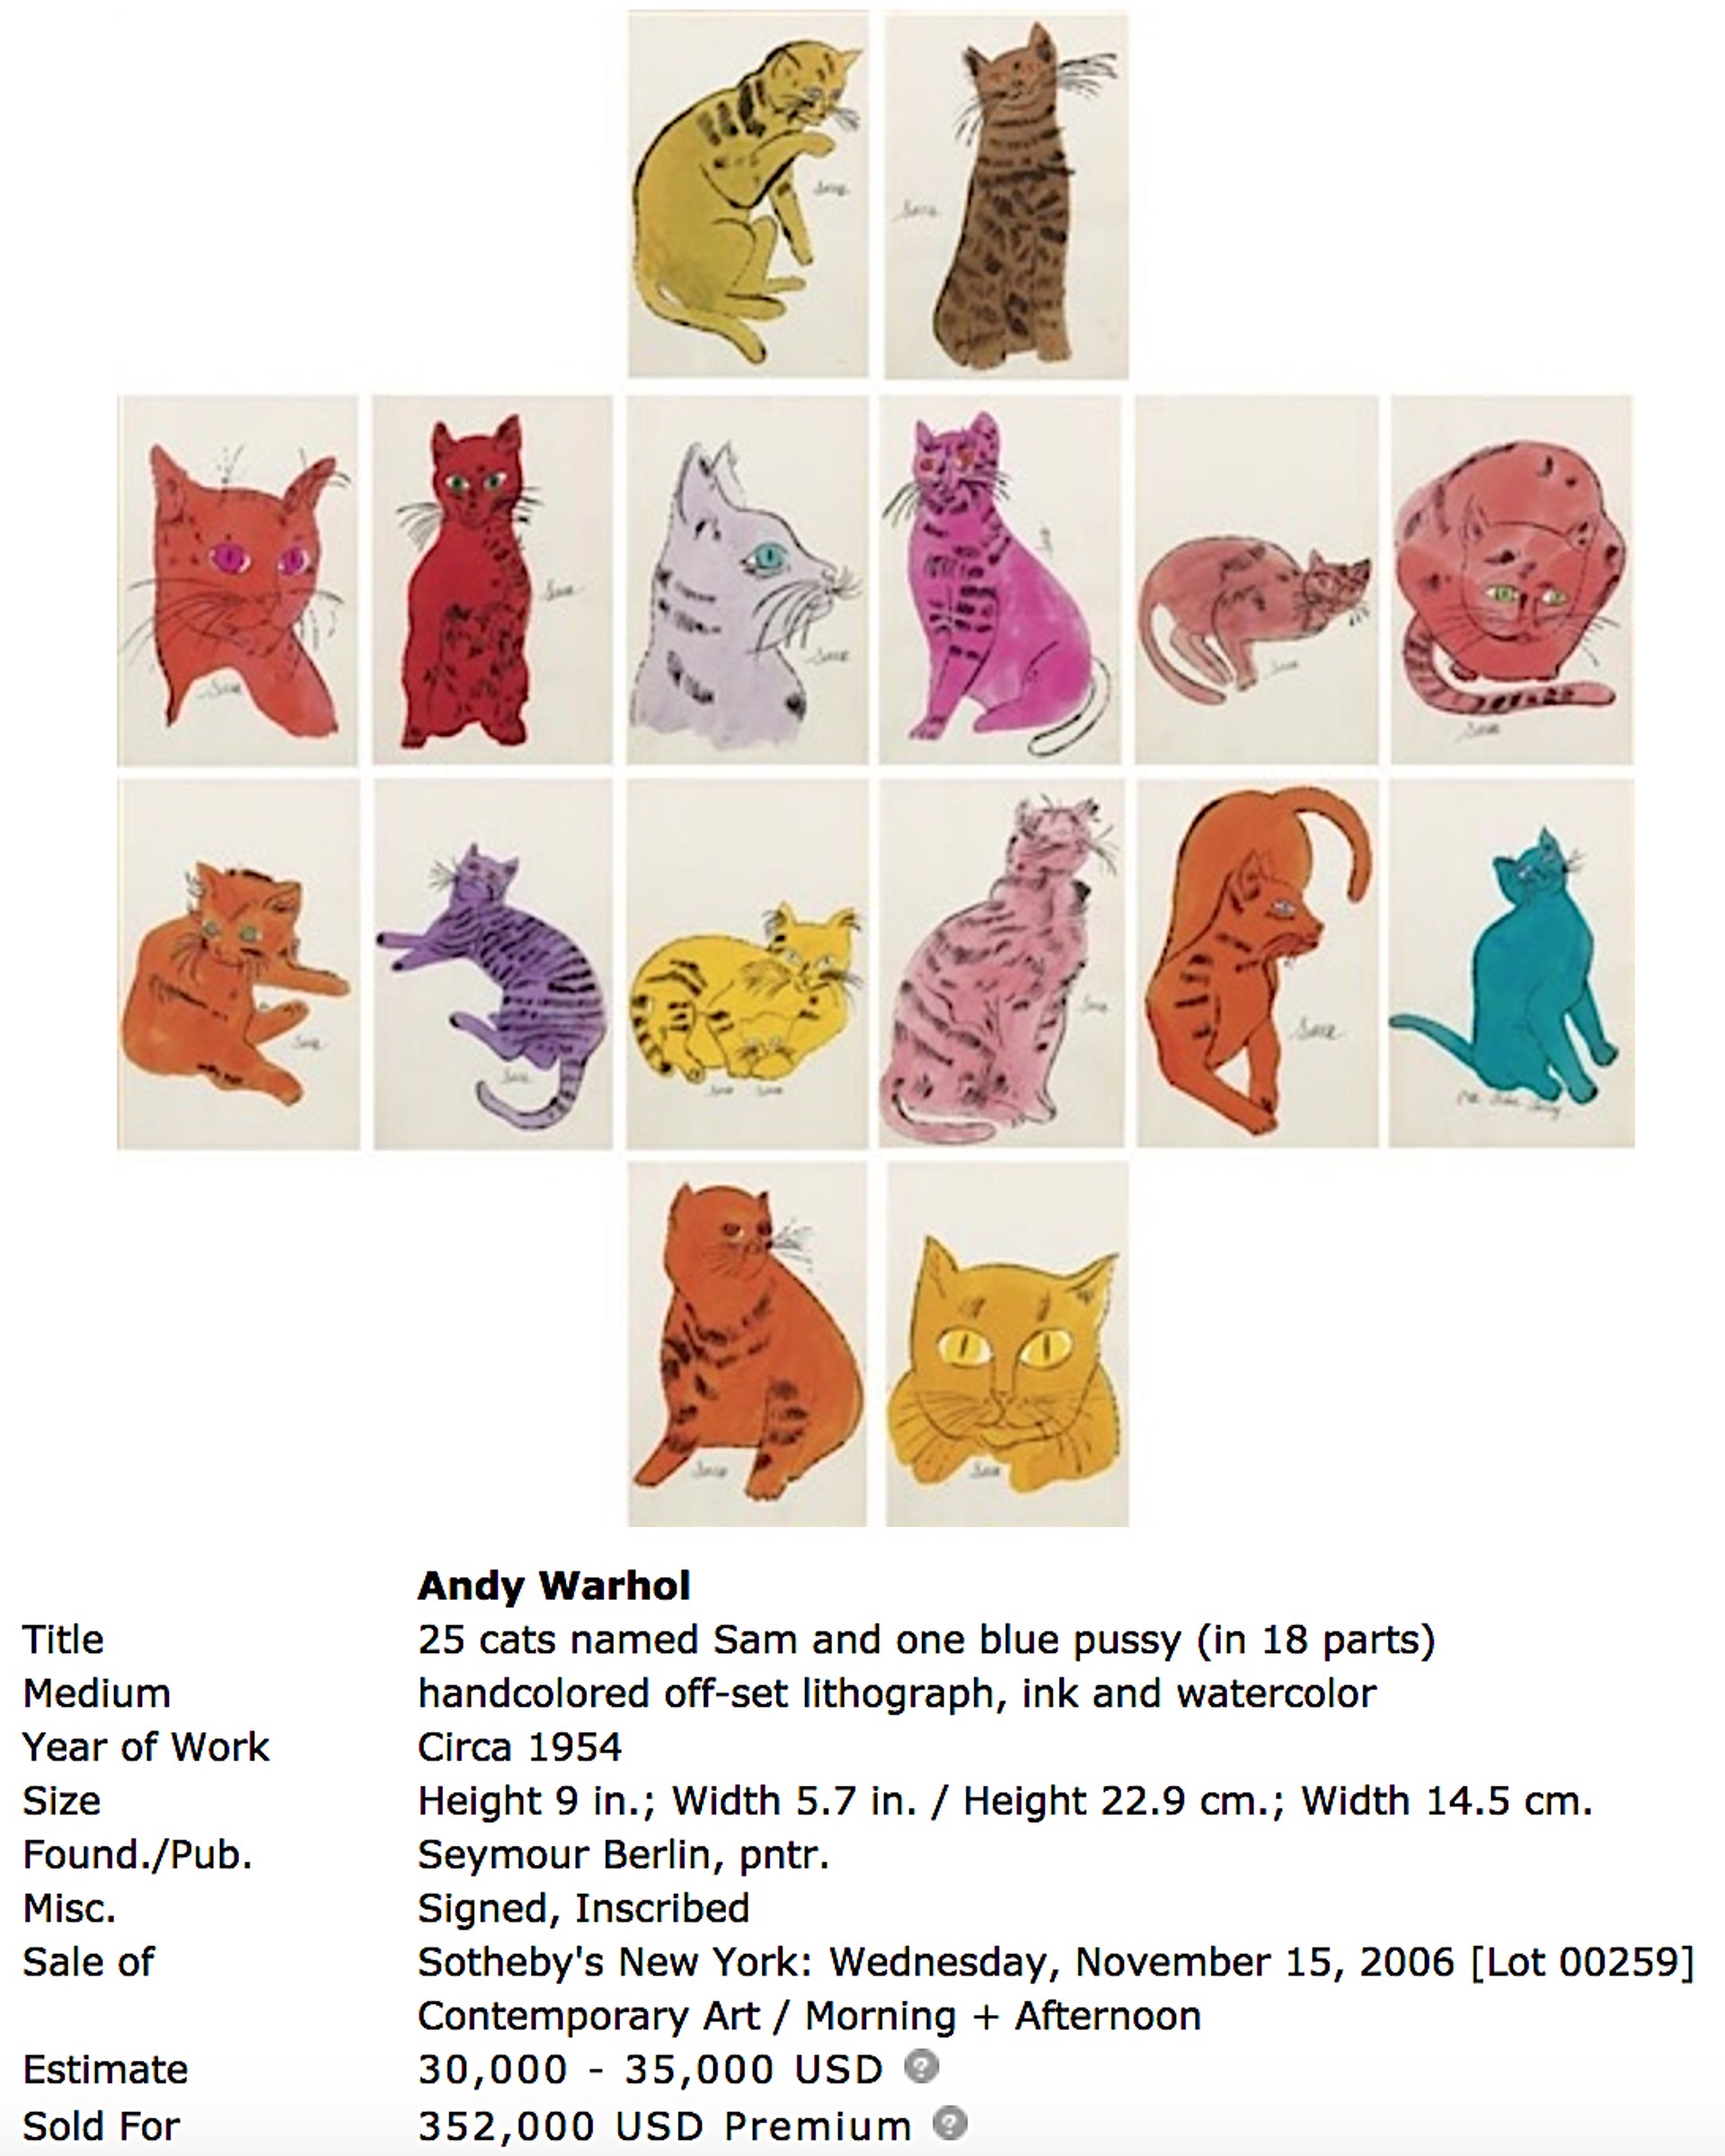 25 Cats Name(d) Sam and One Blue Pussy (complete intact book of watercolors) by Andy Warhol